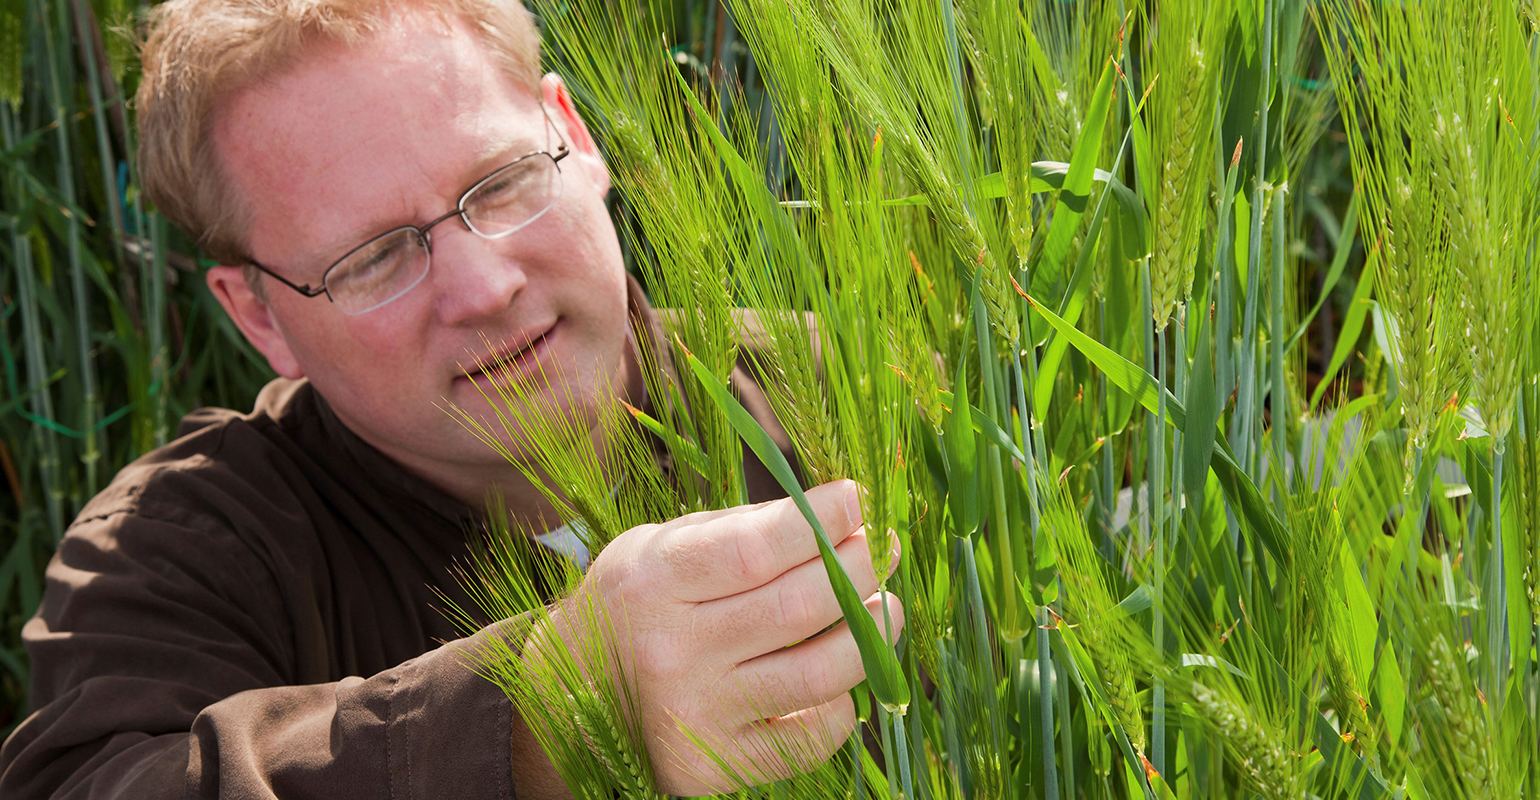 Kevin Smith, U-M oat and barley breeder, examines seed heads